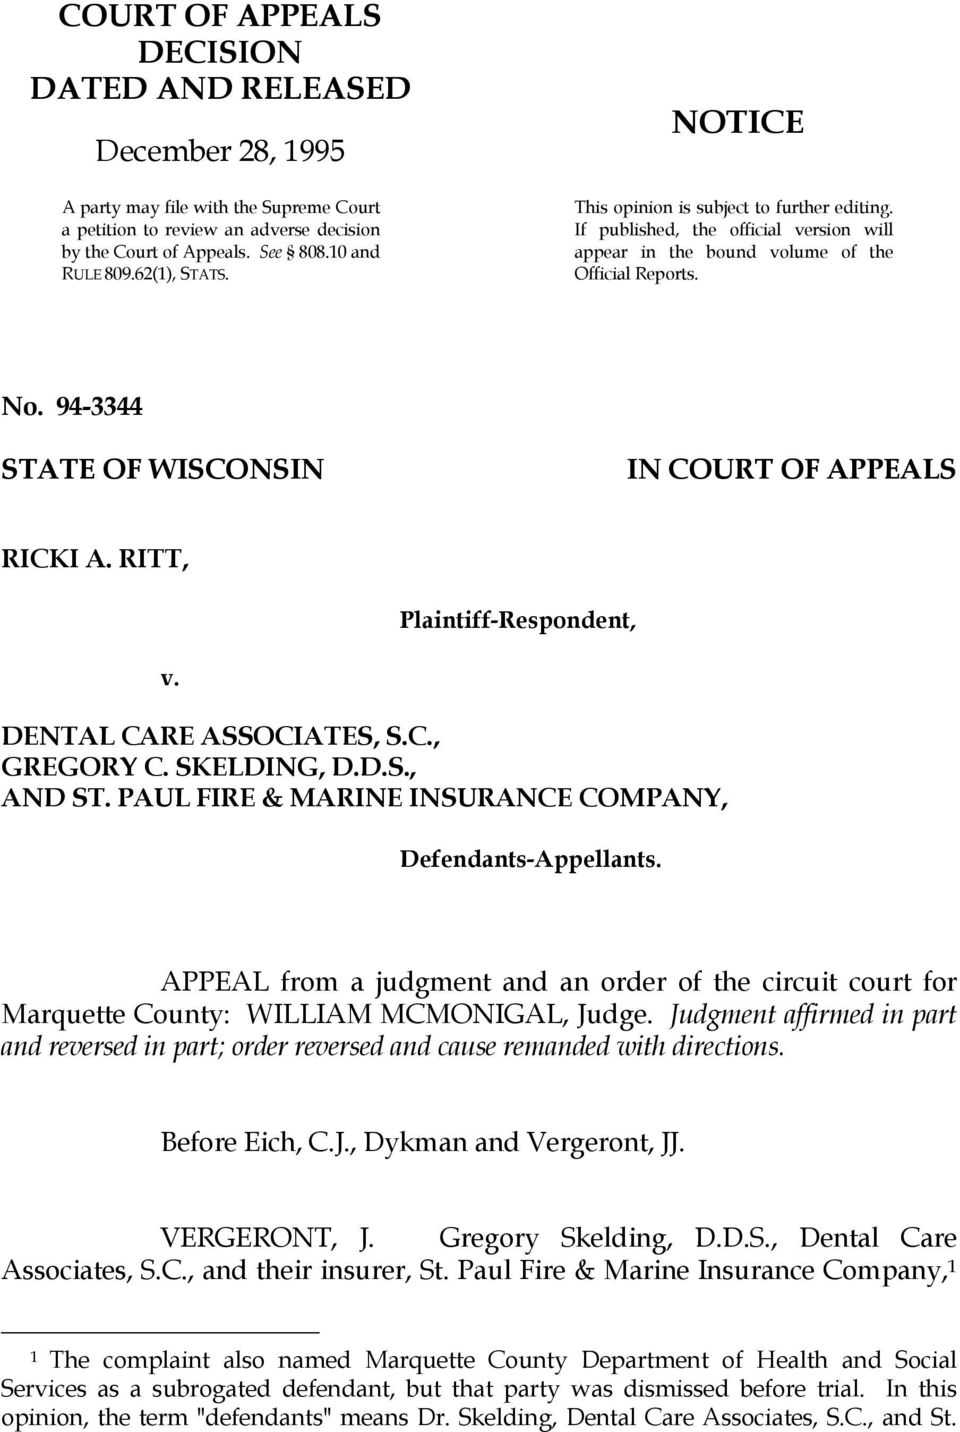 94-3344 STATE OF WISCONSIN IN COURT OF APPEALS RICKI A. RITT, Plaintiff-Respondent, v. DENTAL CARE ASSOCIATES, S.C., GREGORY C. SKELDING, D.D.S., AND ST.